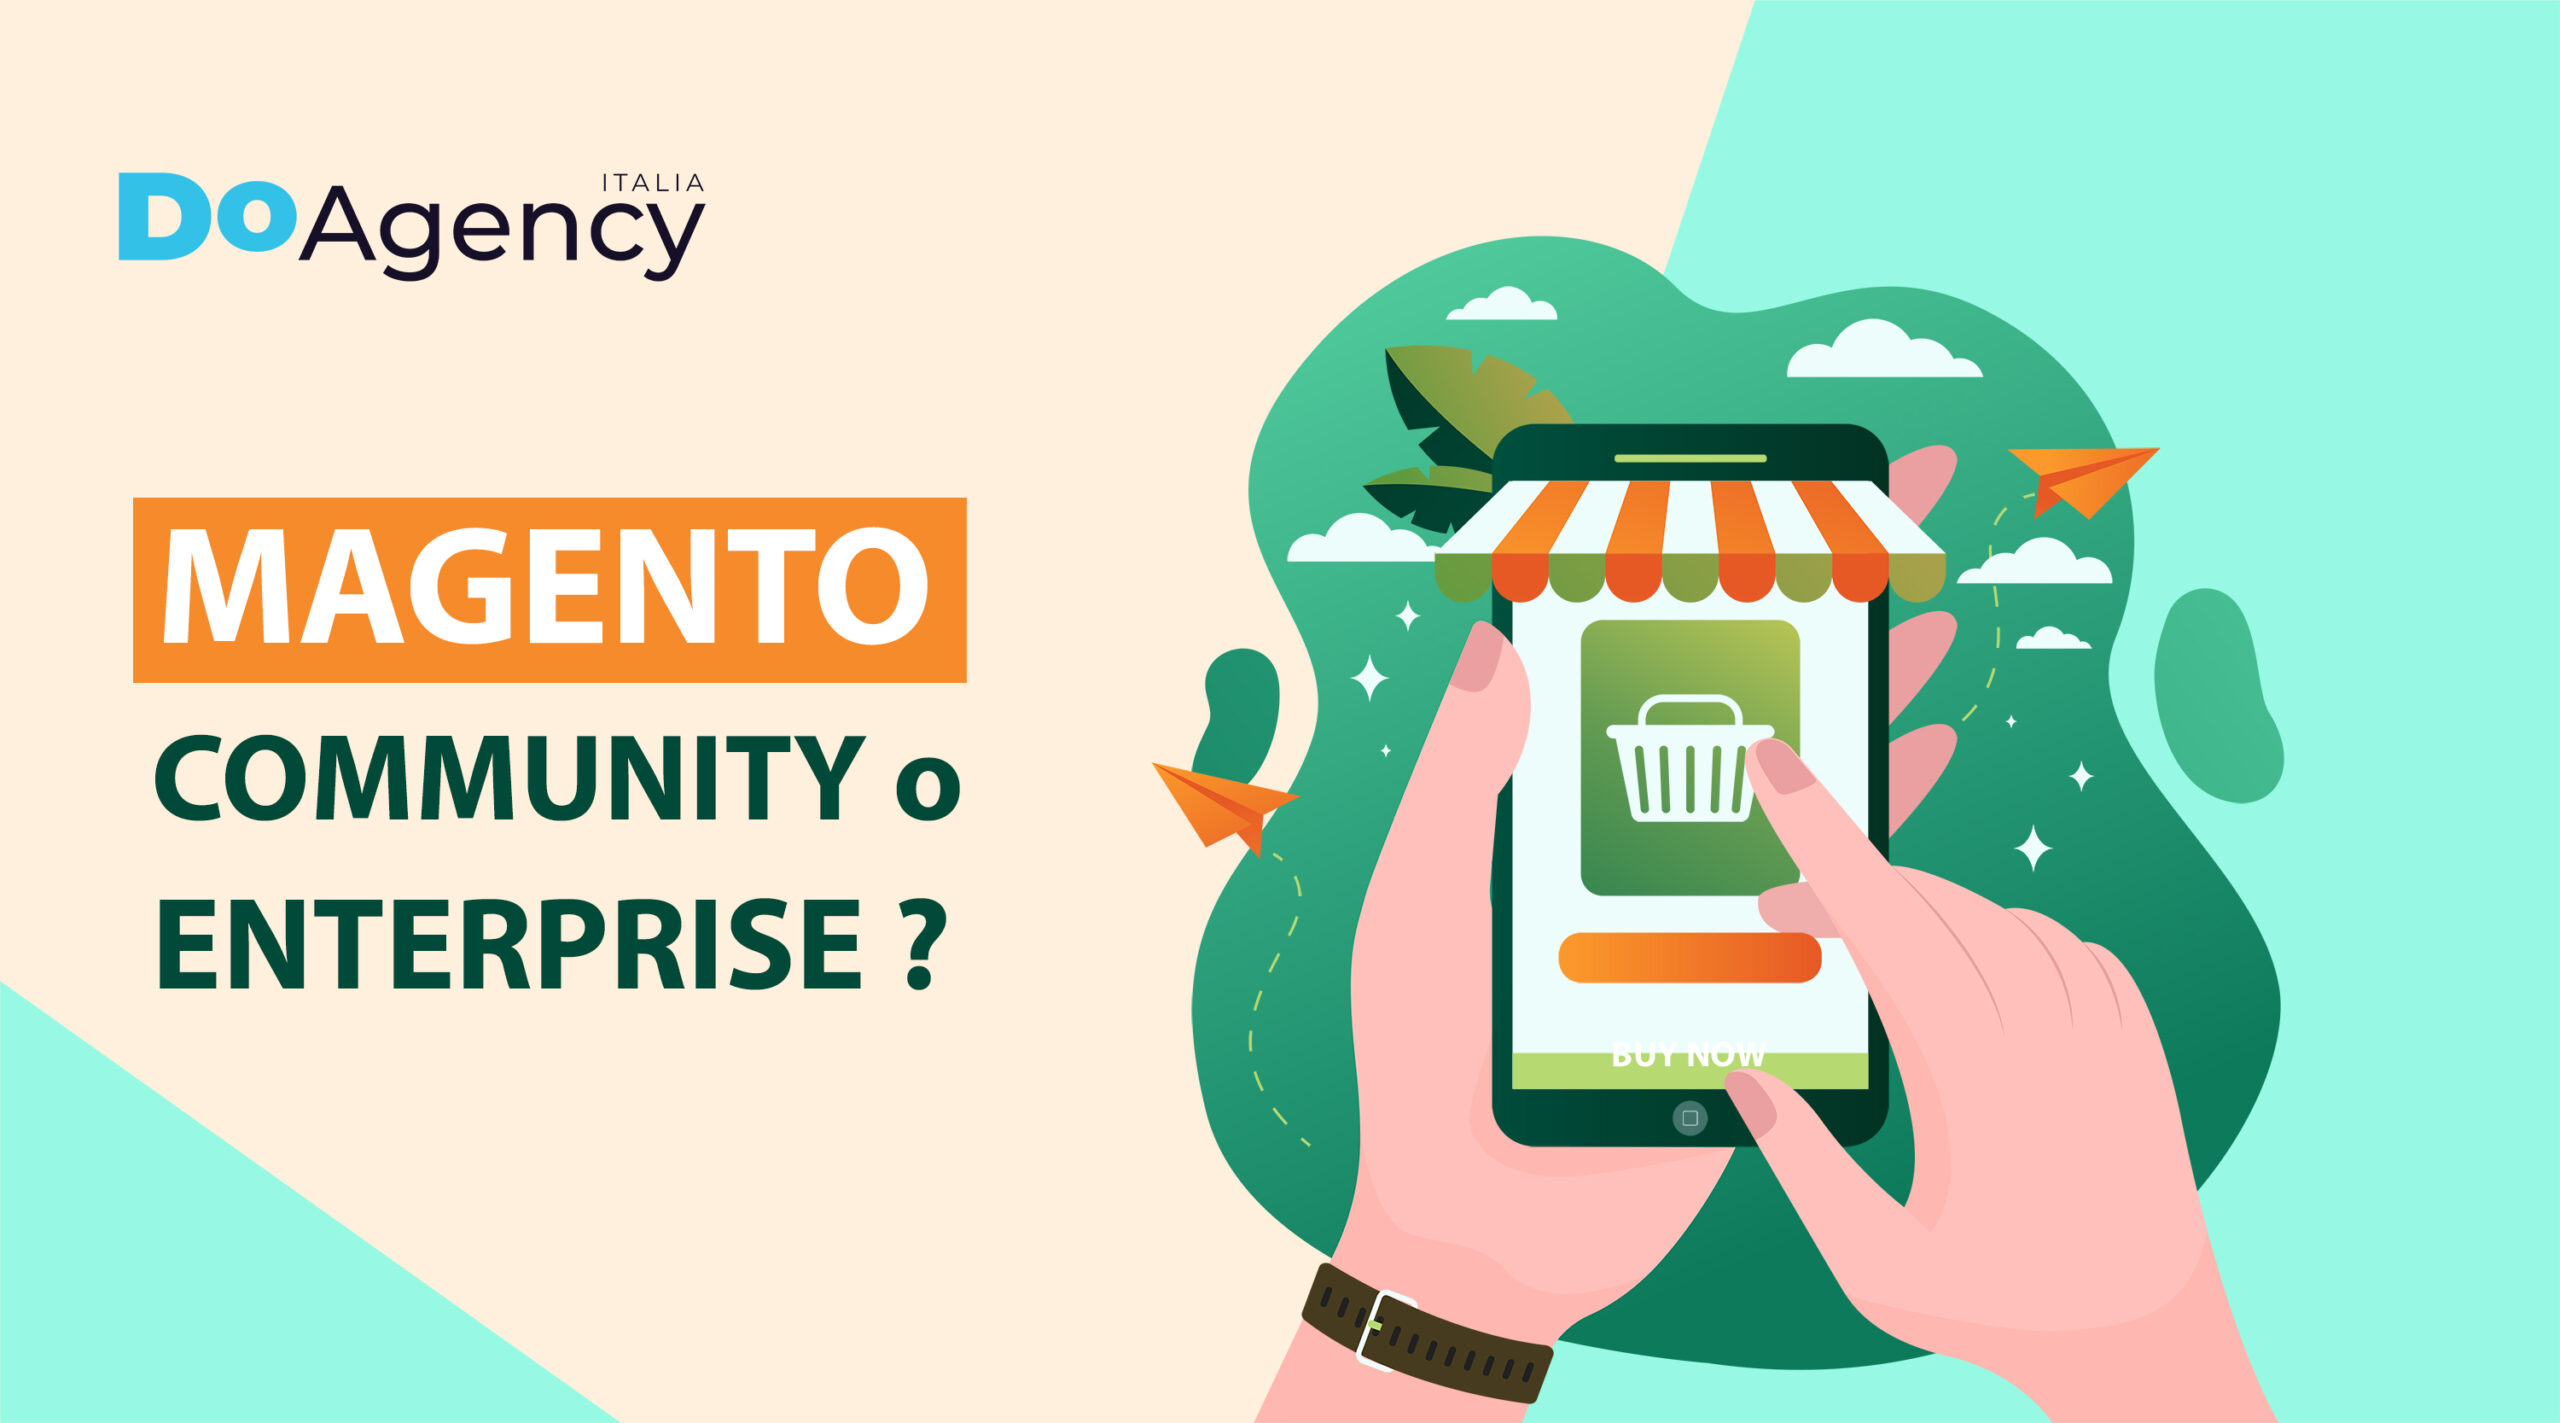 Magento community o magento enterprise?